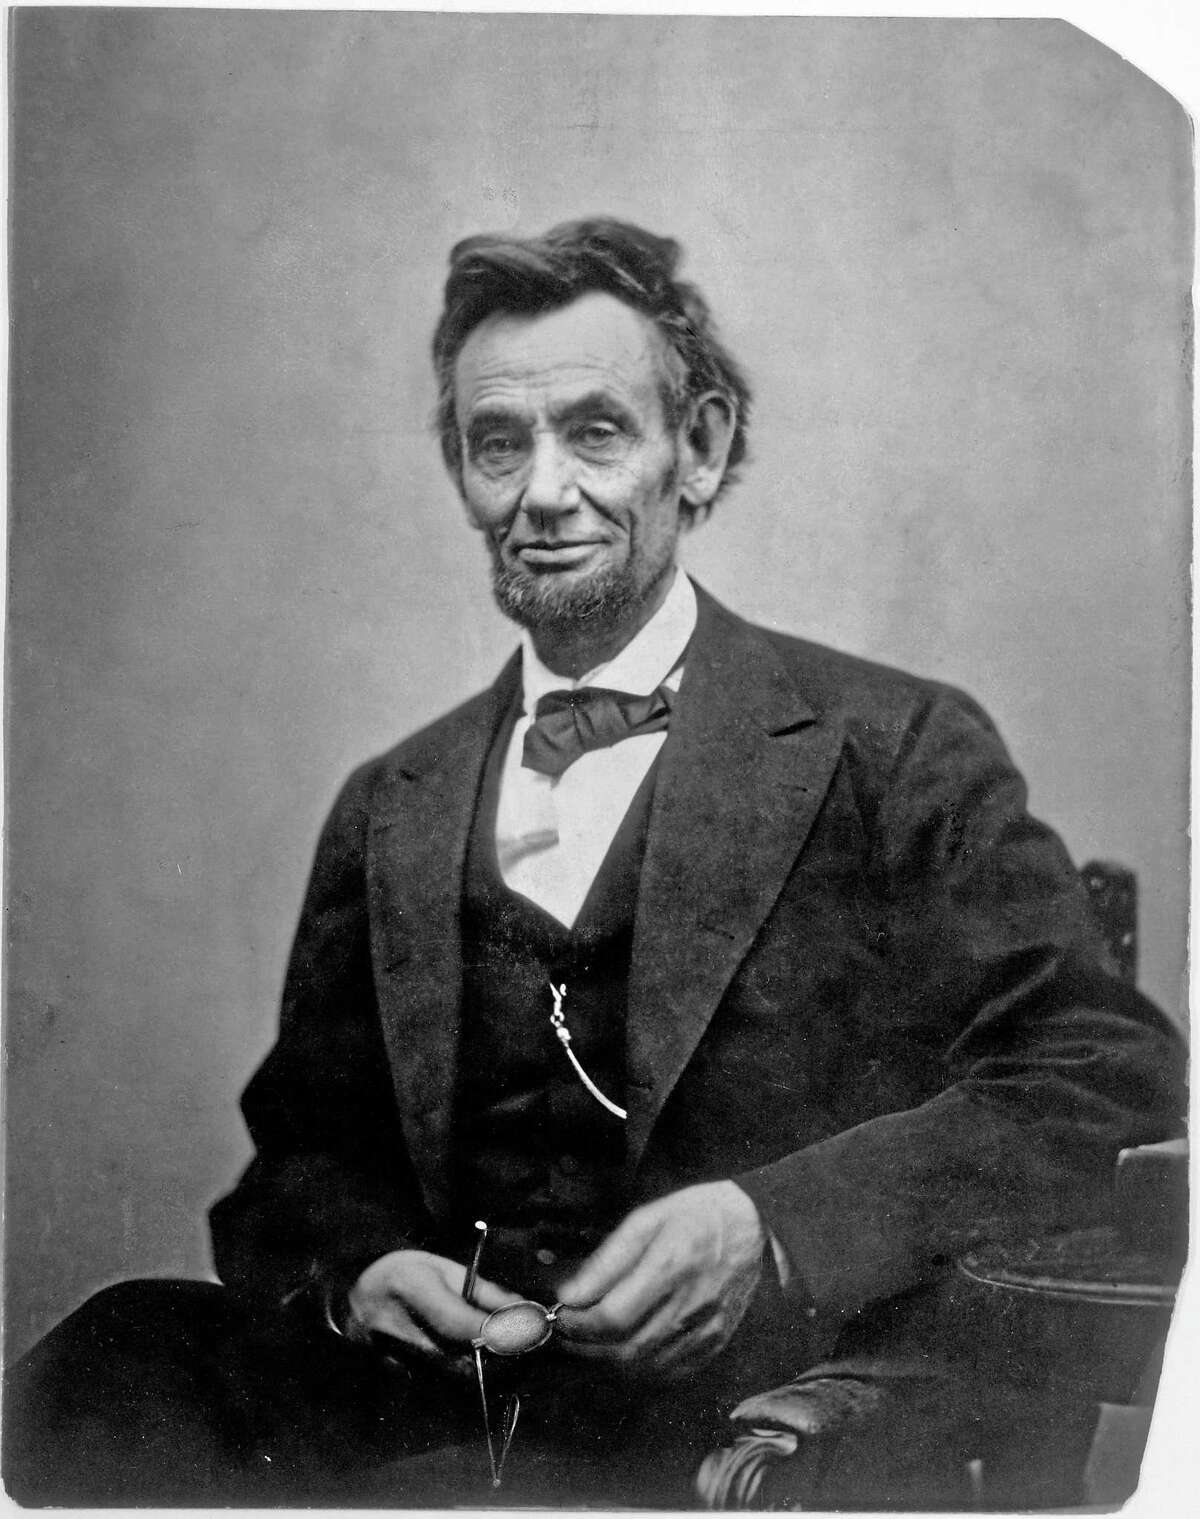 This photograph of Lincoln by Alexander Gardner was taken on Feb. 5, 1865. The president's haggard, careworn appearance shows the toll wrought by four years of war.